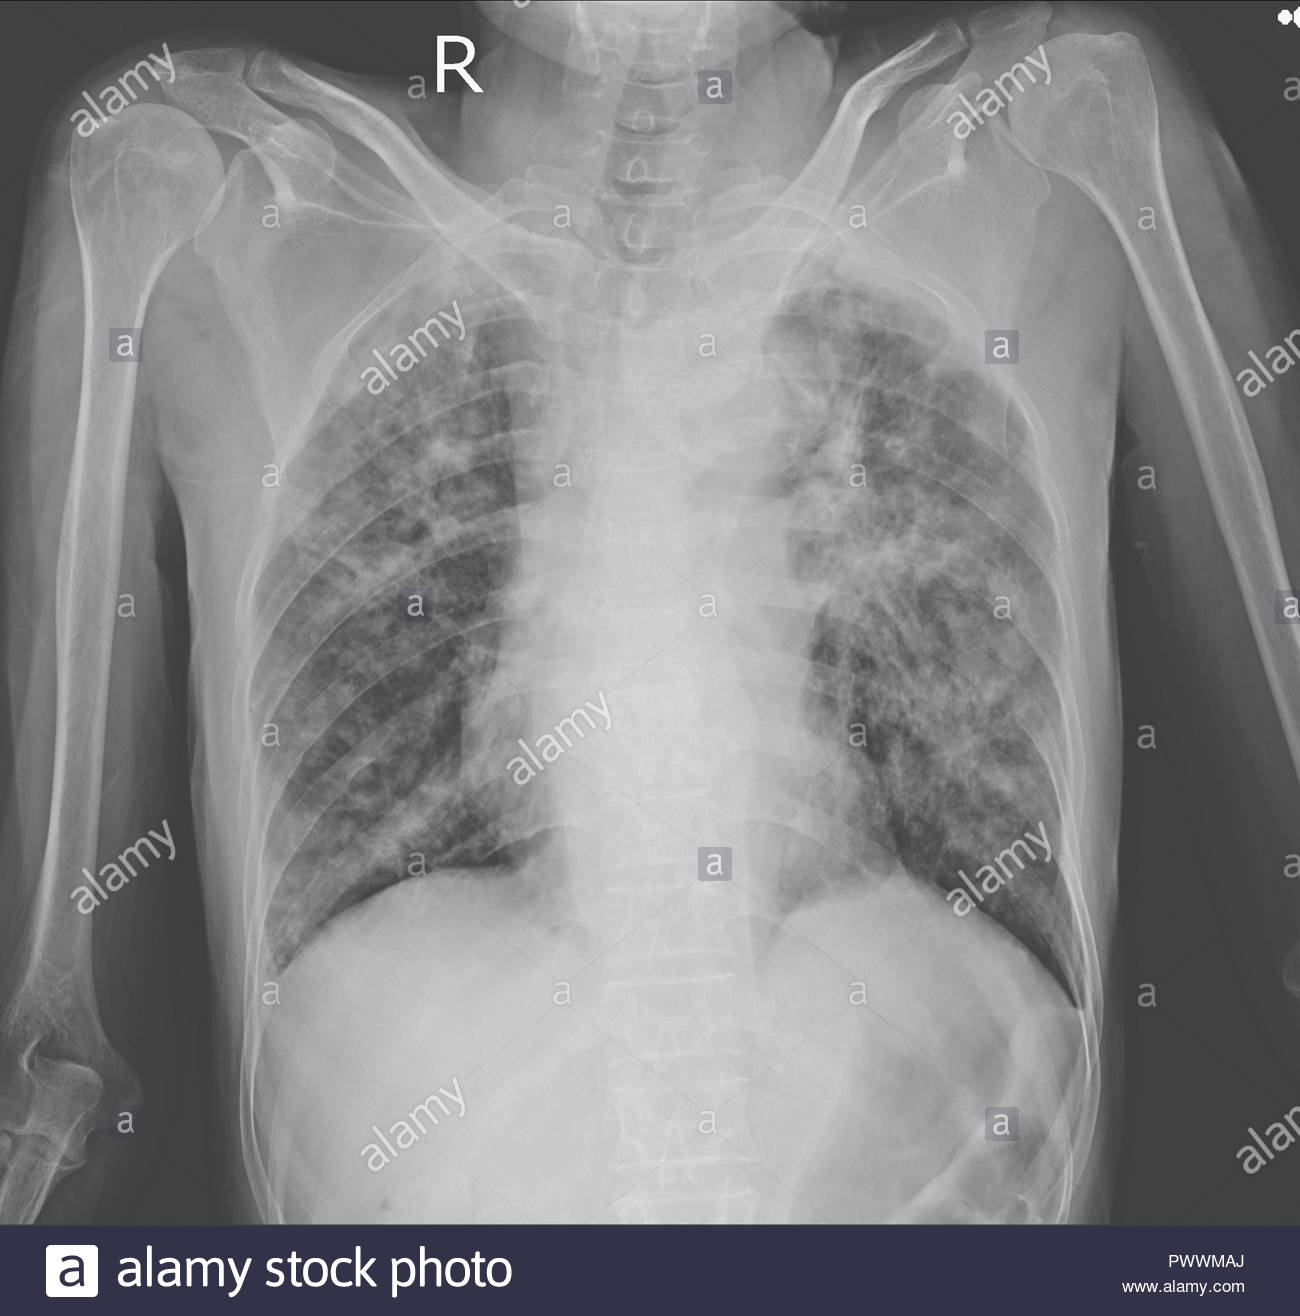 Chest x-ray showing Interstitial pulmonary infiltration with dry cavities both lungs.Impression : Pulmonary tuberculosis. - Stock Image